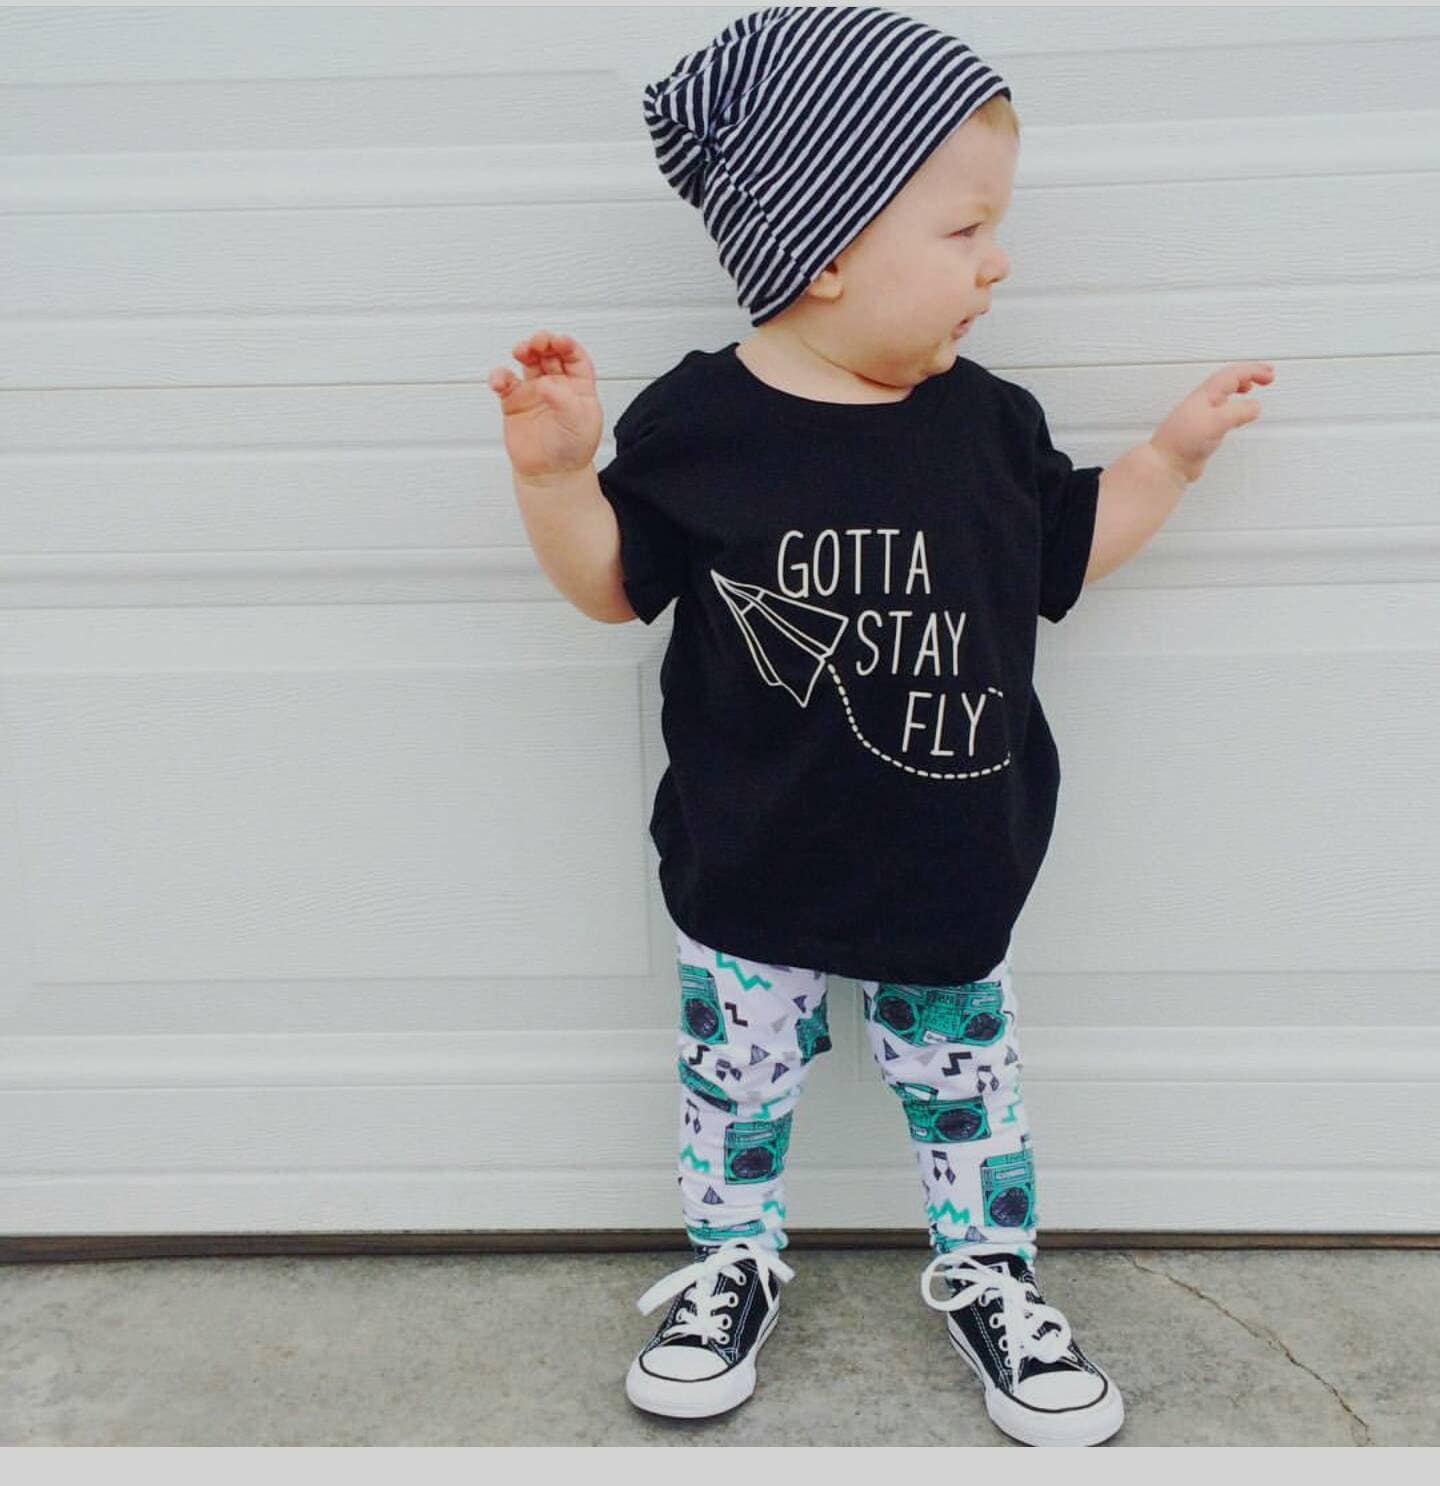 Gotta stay fly trendy boy clothes hipster baby clothes